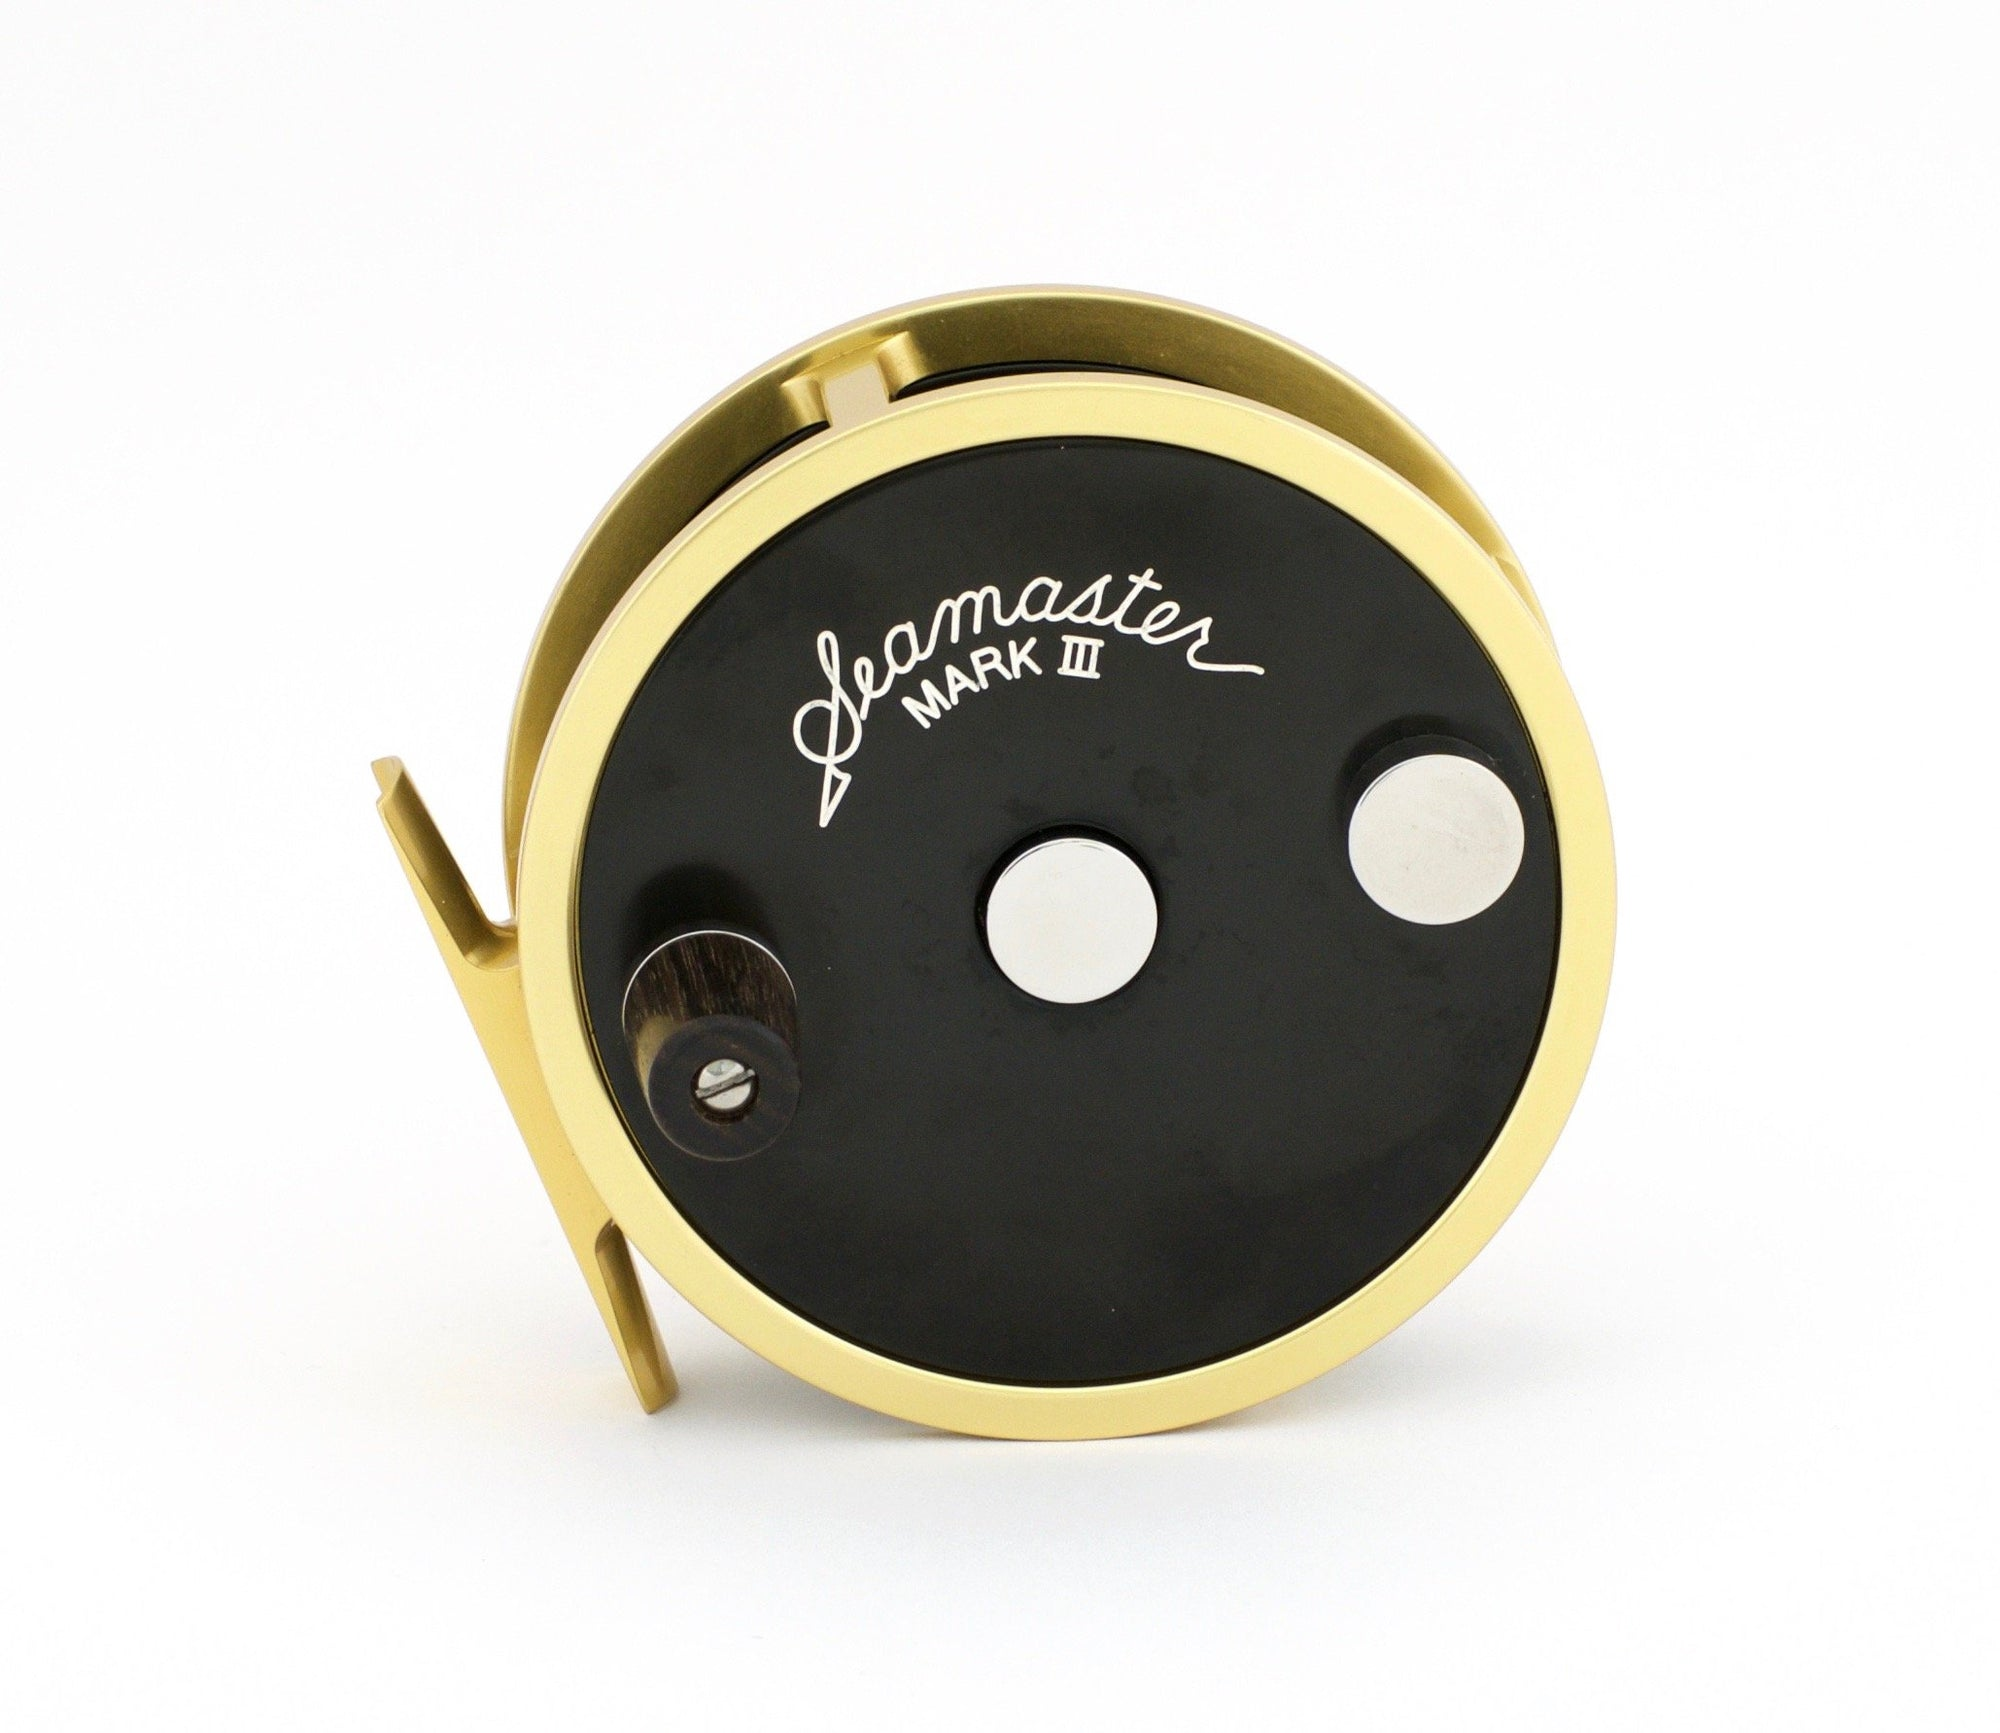 Seamaster Mark III Fly Reel